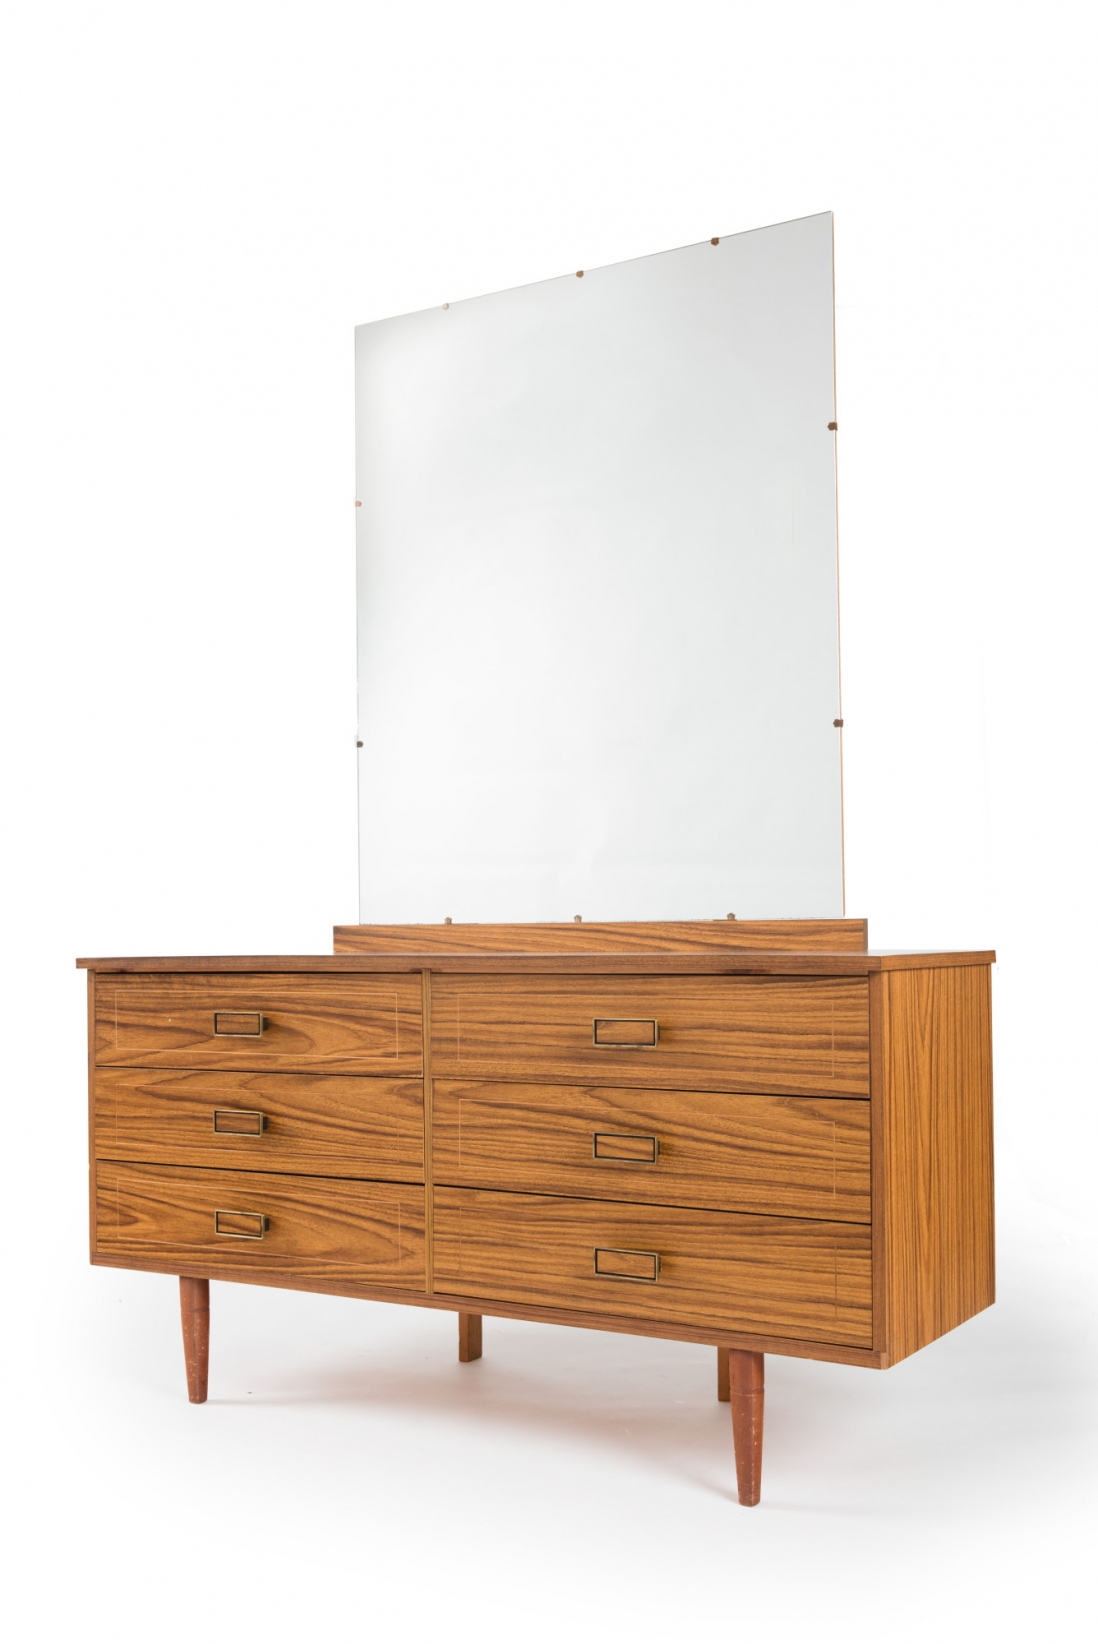 Timber chest of drawers with mirror attached above.